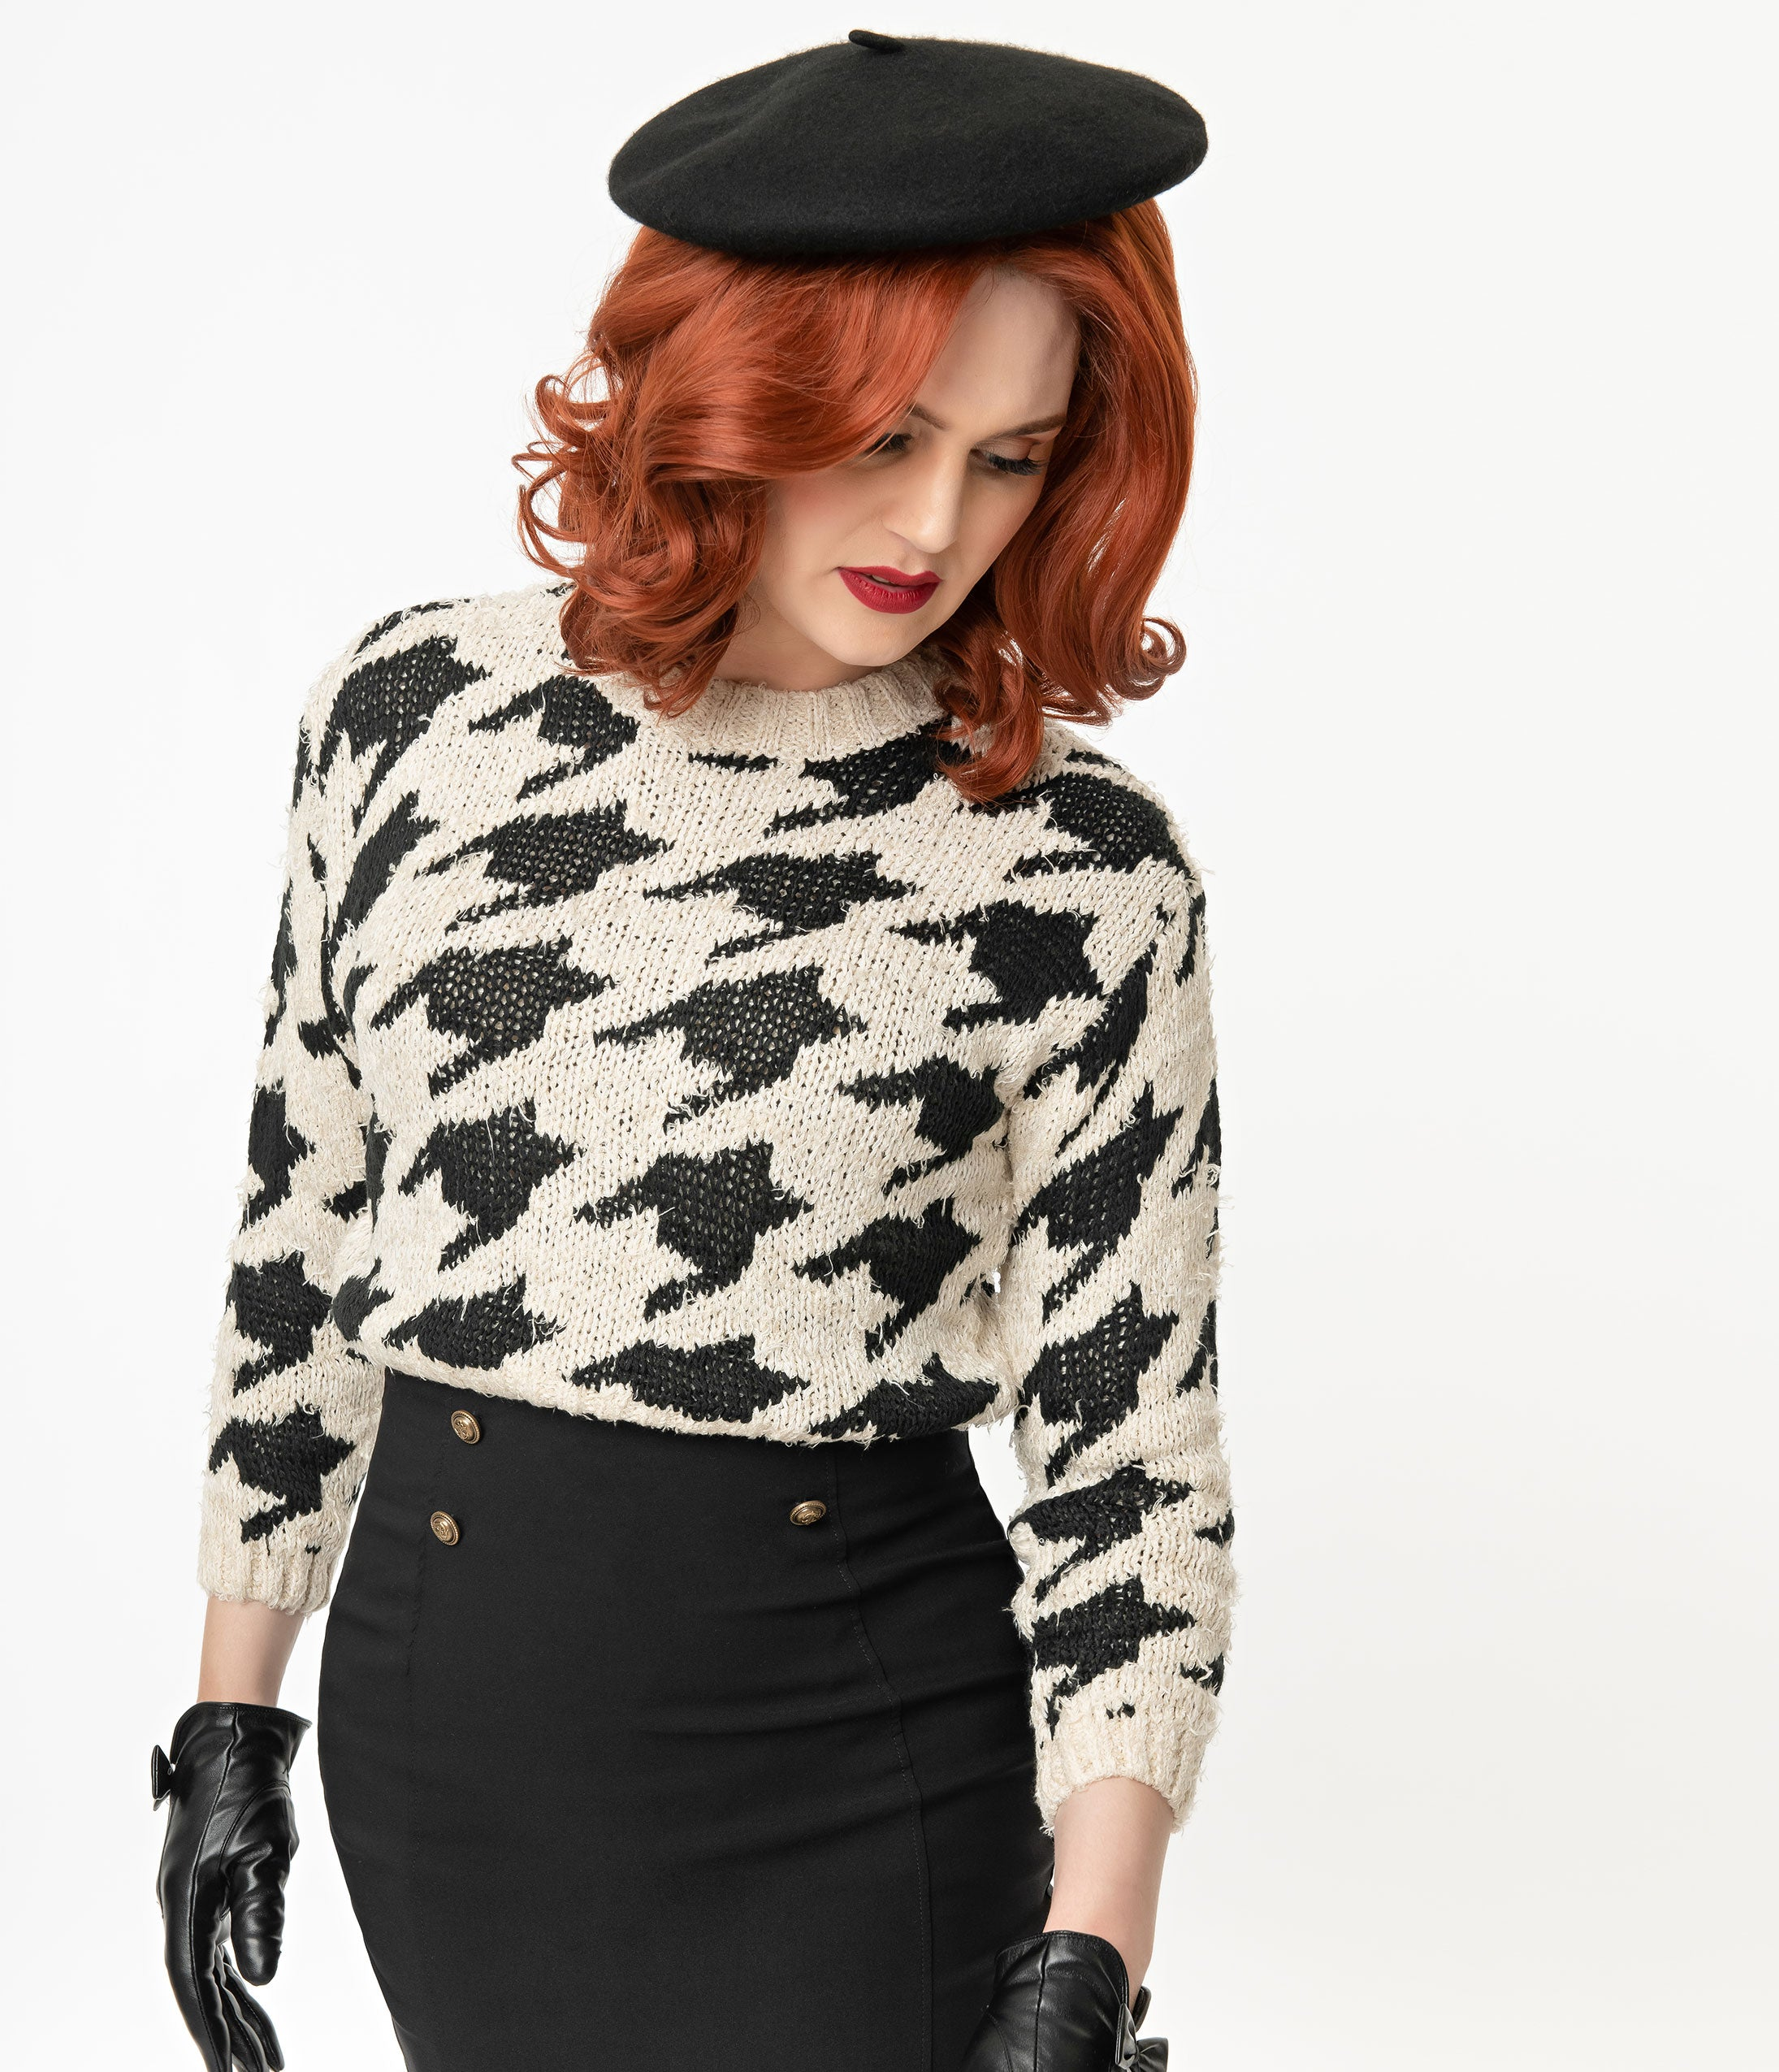 Vintage Sweaters, Retro Sweaters & Cardigan Black  Beige Oversized Houndstooth Crop Sweater $62.00 AT vintagedancer.com